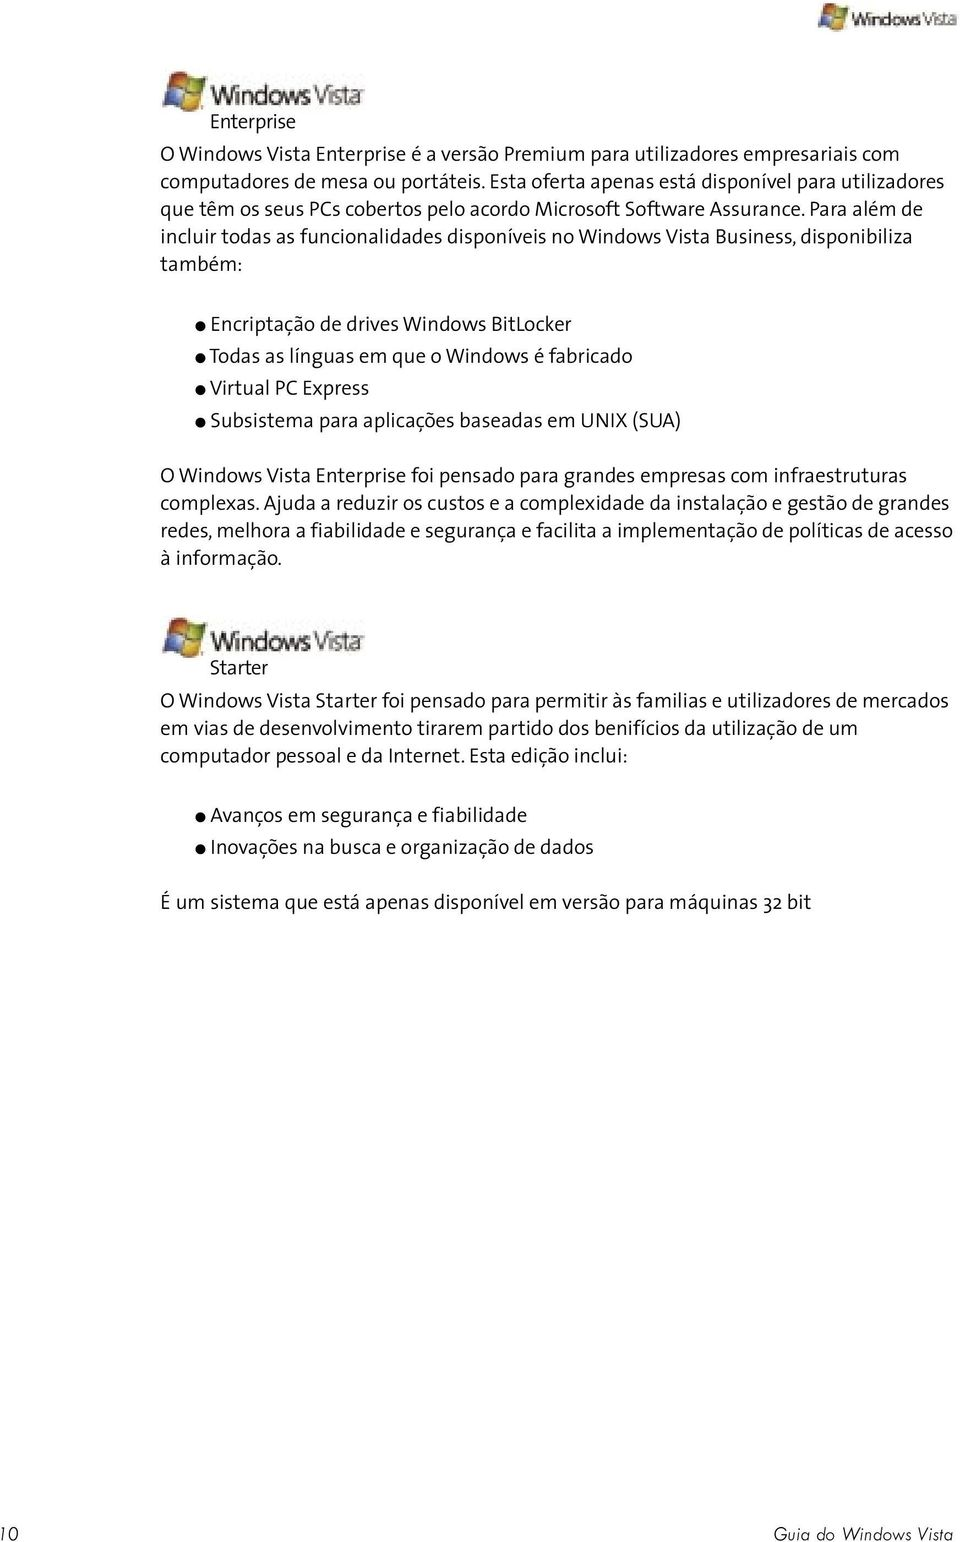 Para além de incluir todas as funcionalidades disponíveis no Windows Vista Business, disponibiliza também: Encriptação de drives Windows BitLocker Todas as línguas em que o Windows é fabricado